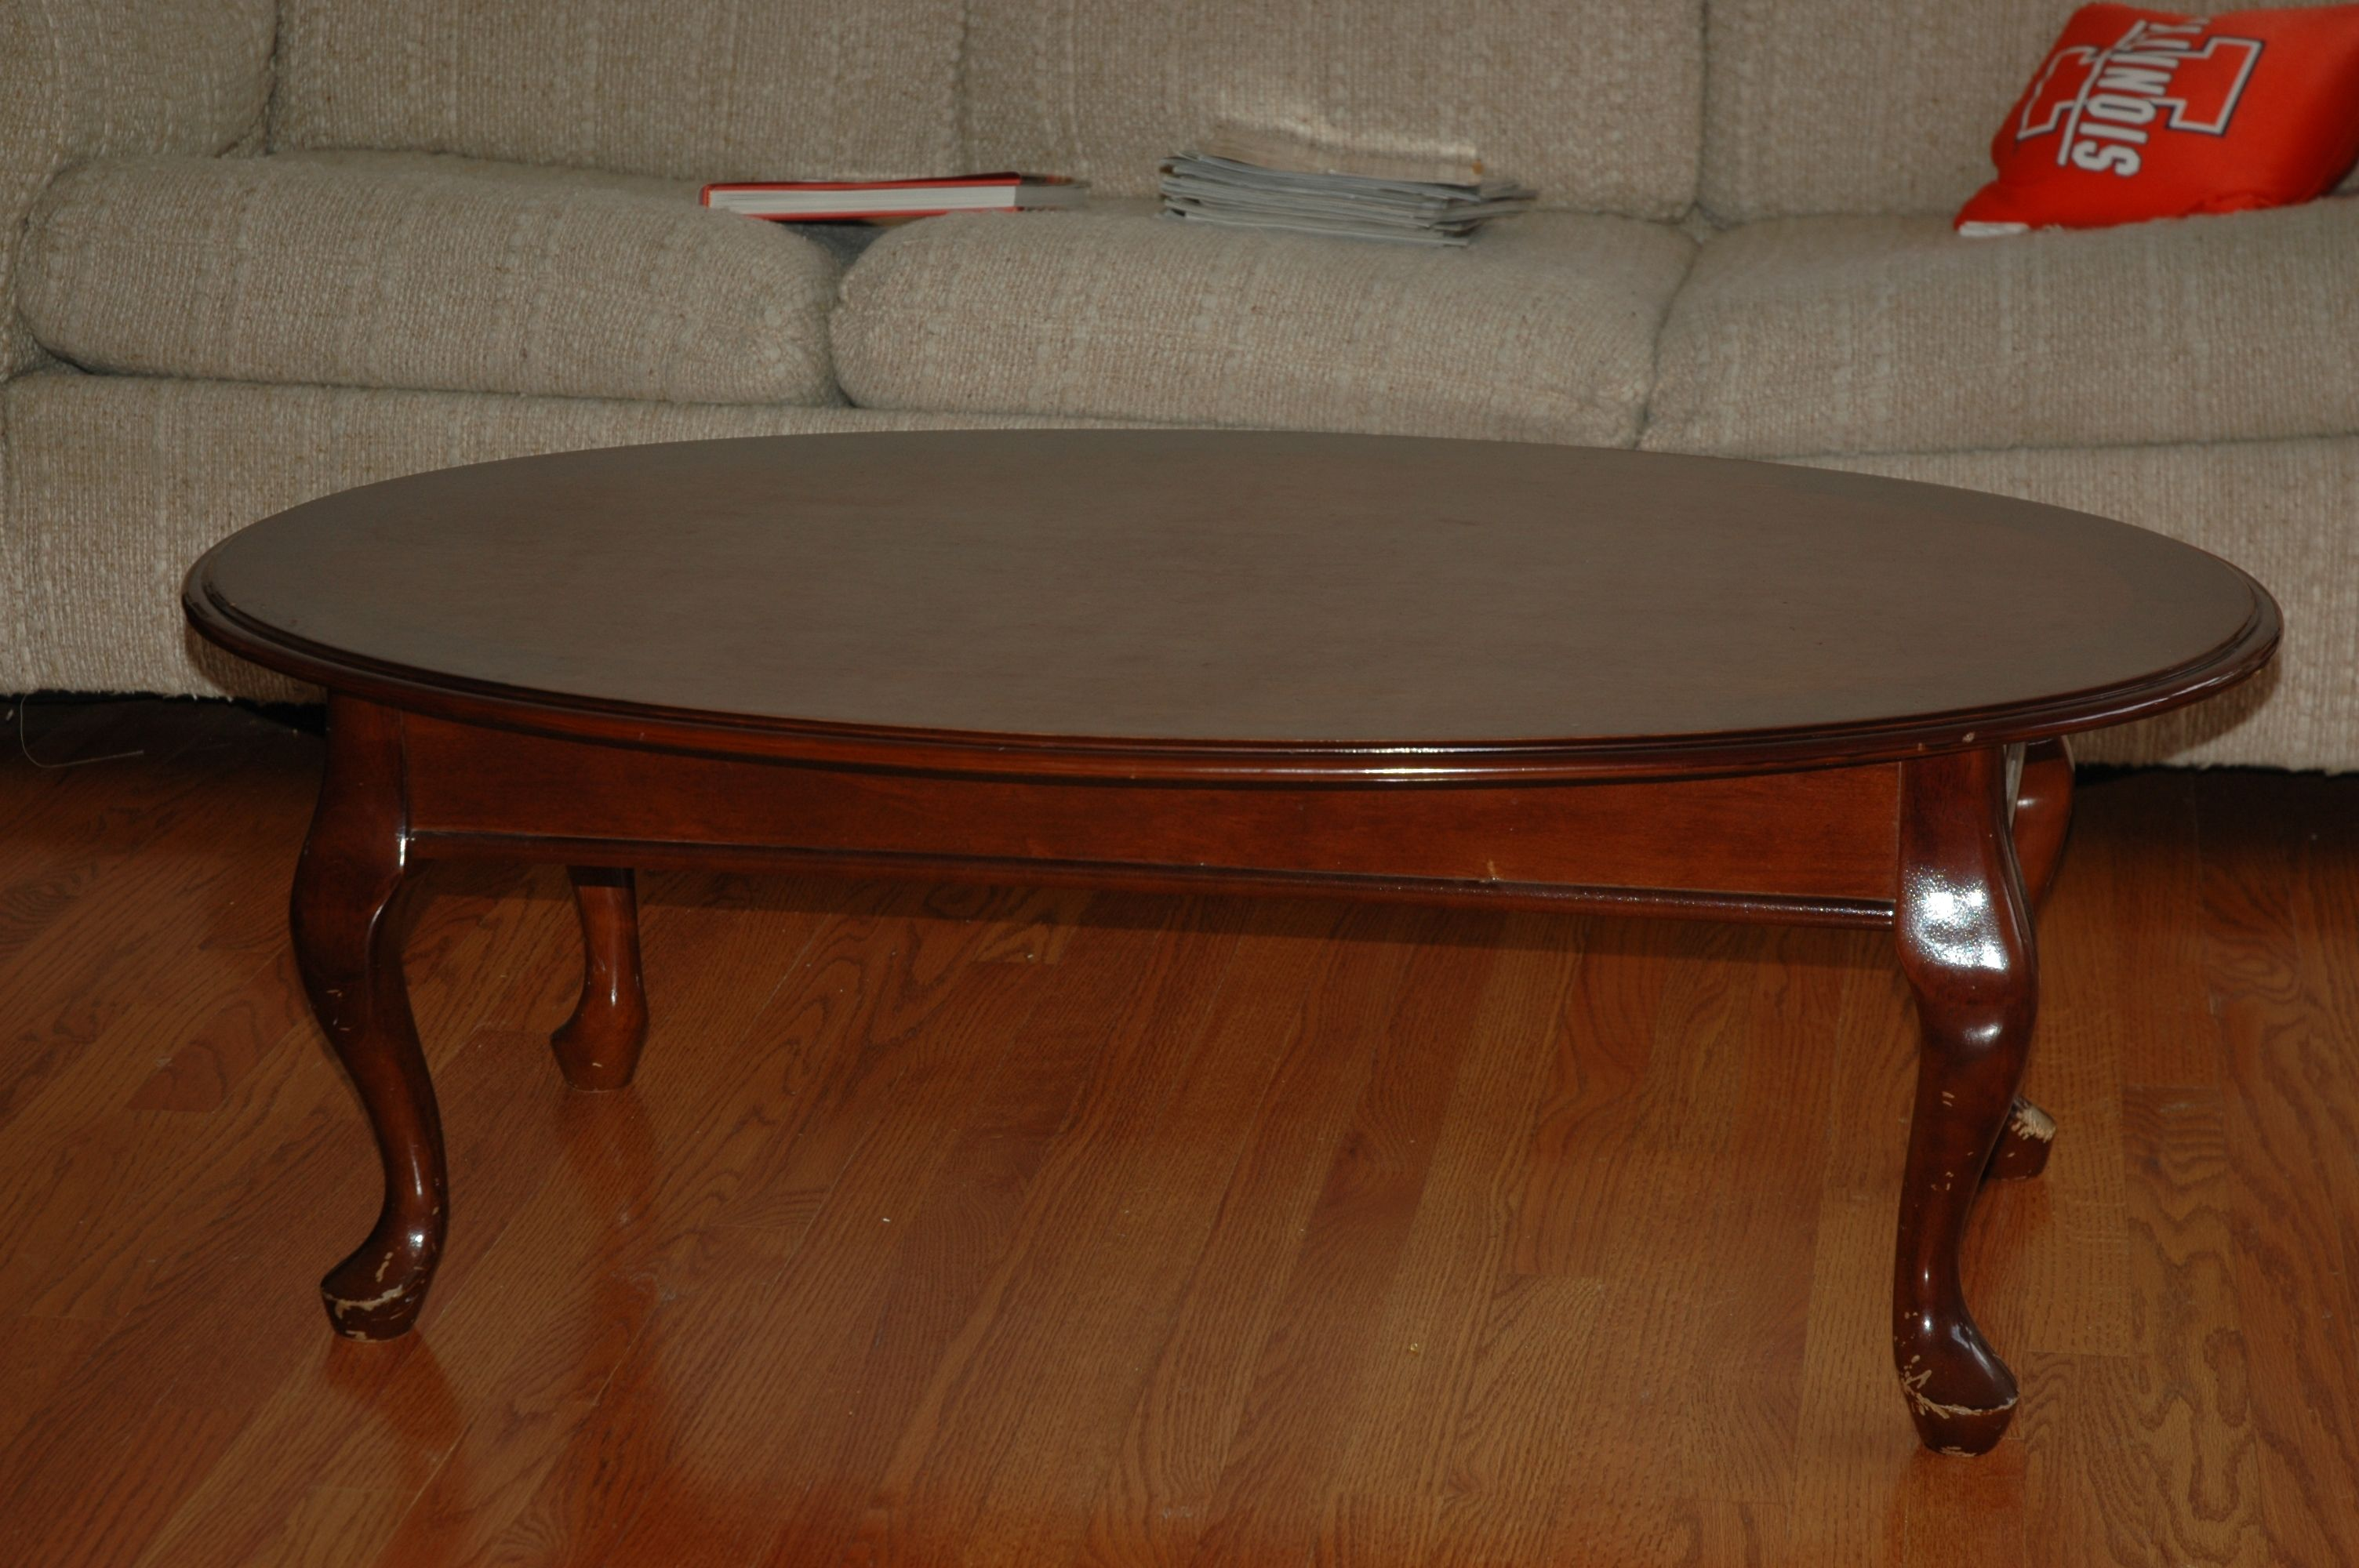 Gentil Small Oval Cherry Coffee Table